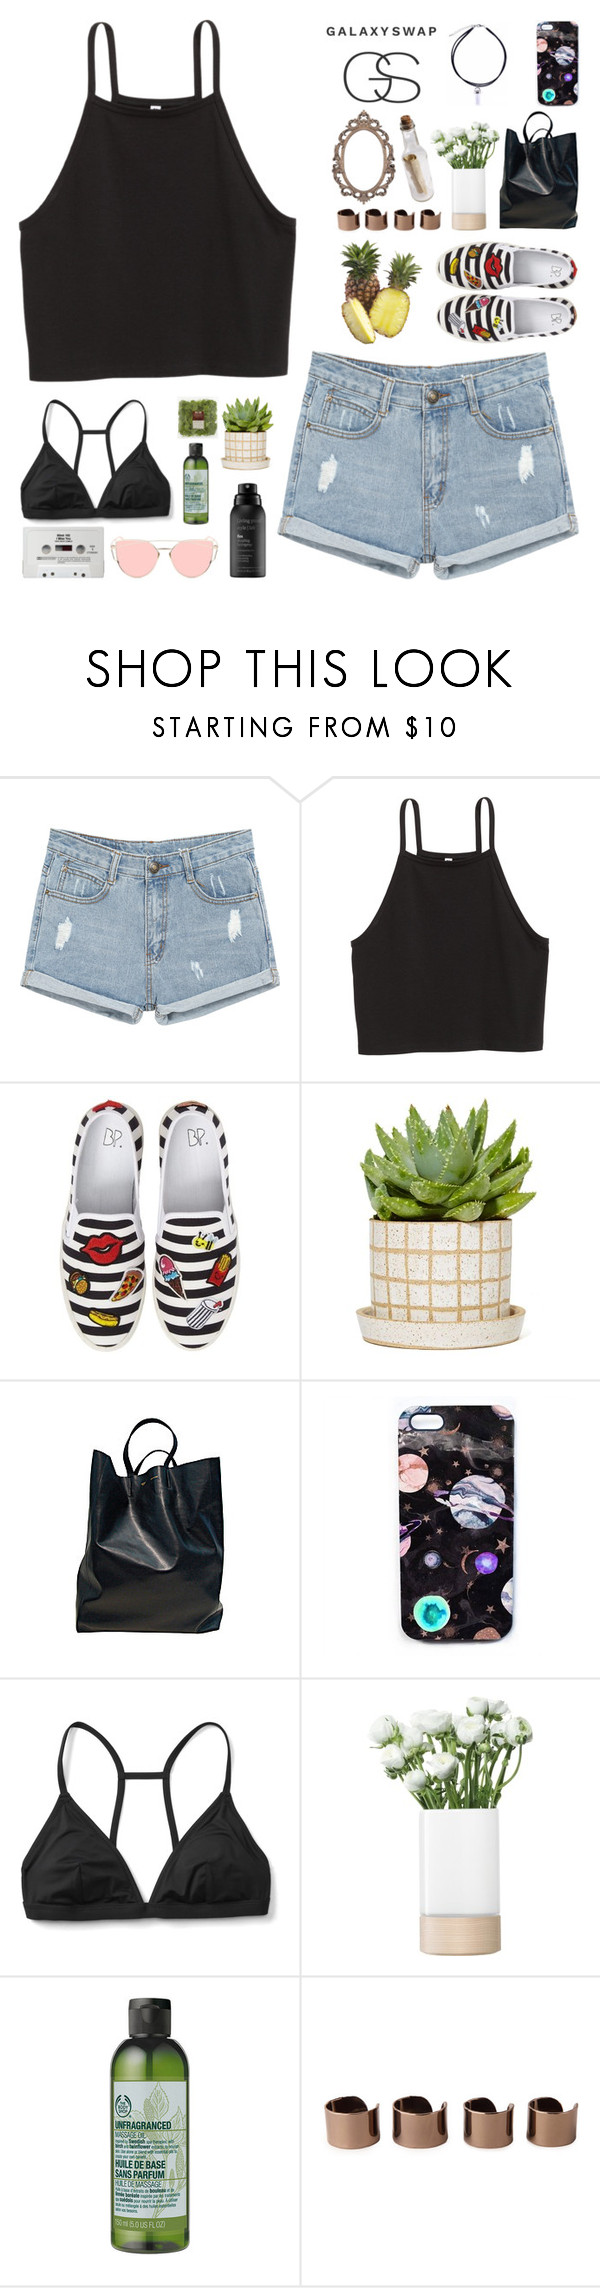 """{ ☀ galaxyswap contest ☀ ] we won't survive, we're sinkin' into the sand ~"" by wintervale ❤ liked on Polyvore featuring BP., CÉLINE, Nikki Strange, Gap, LSA International, CO, The Body Shop, Maison Margiela and Living Proof"